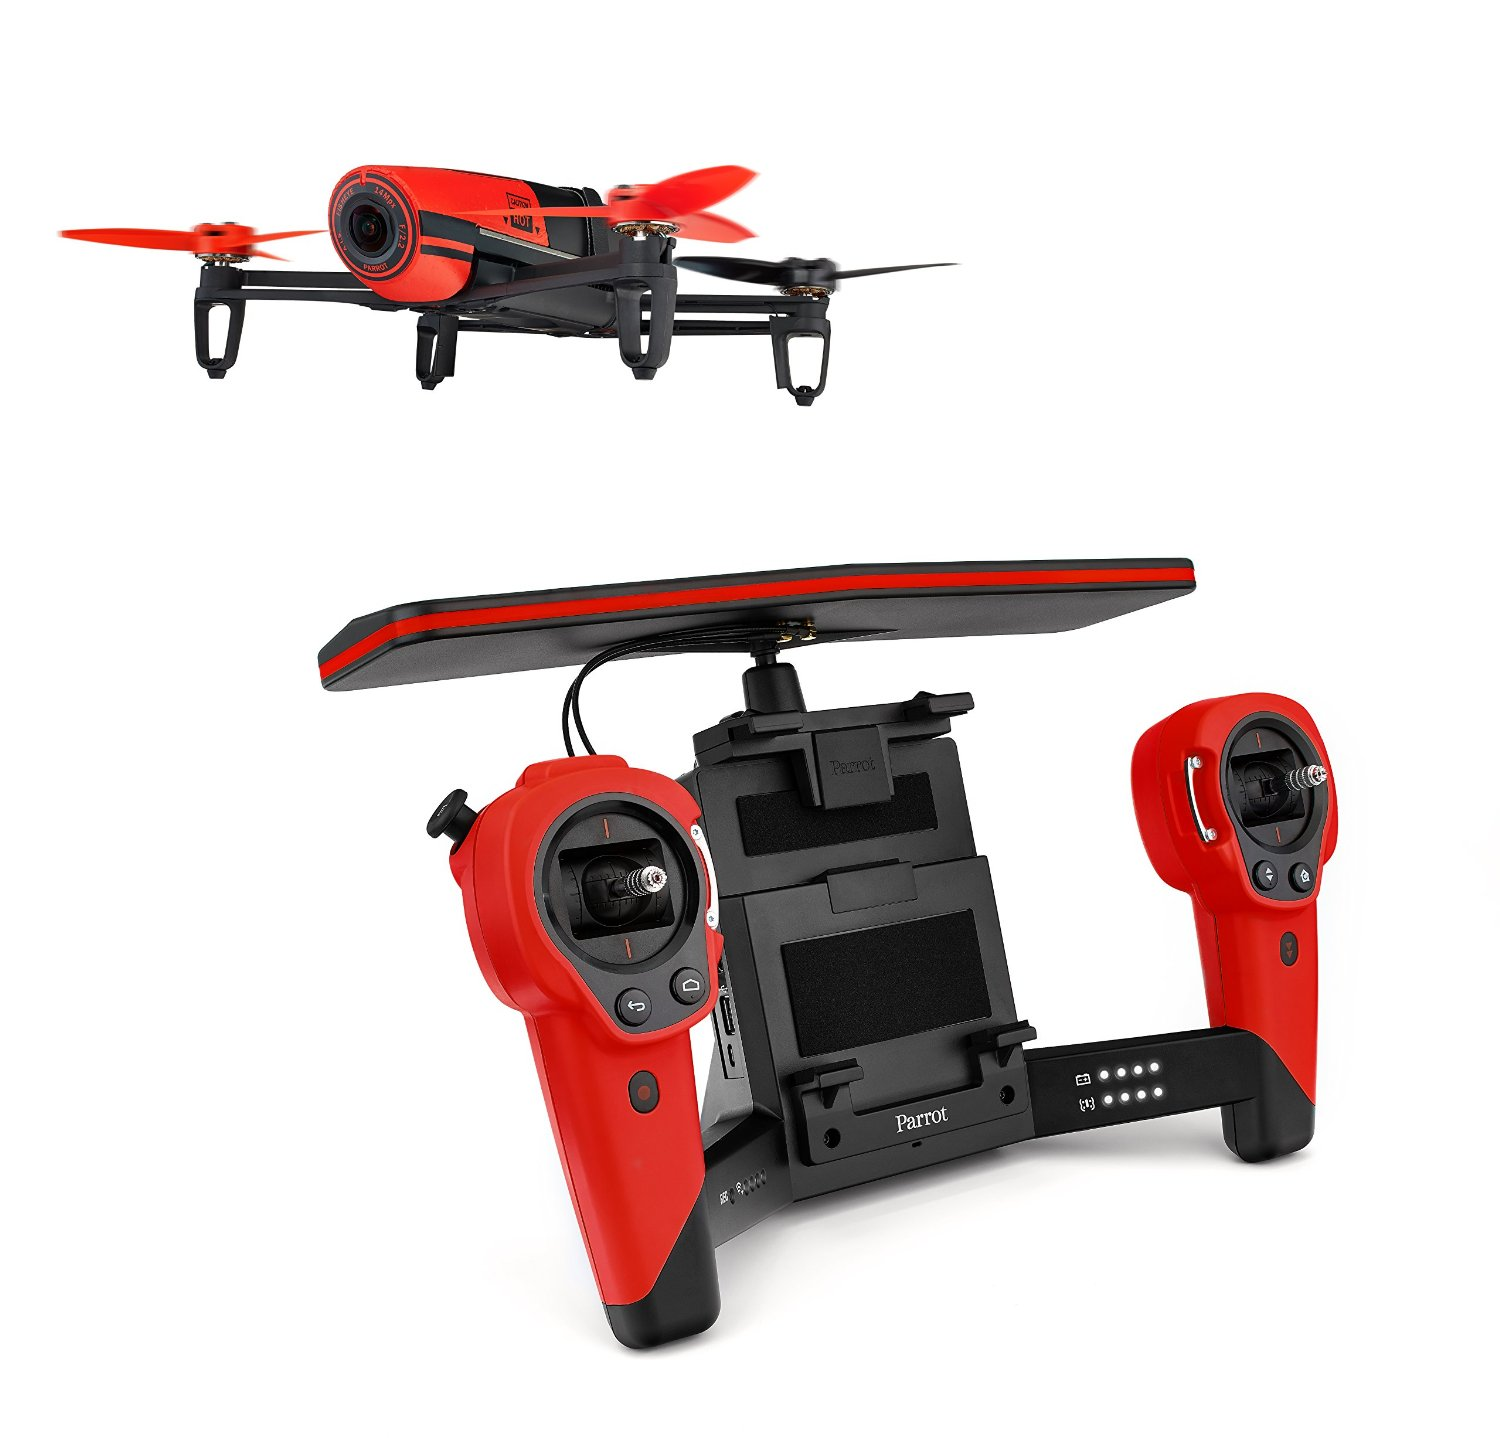 Drone Pilot Holiday Gift